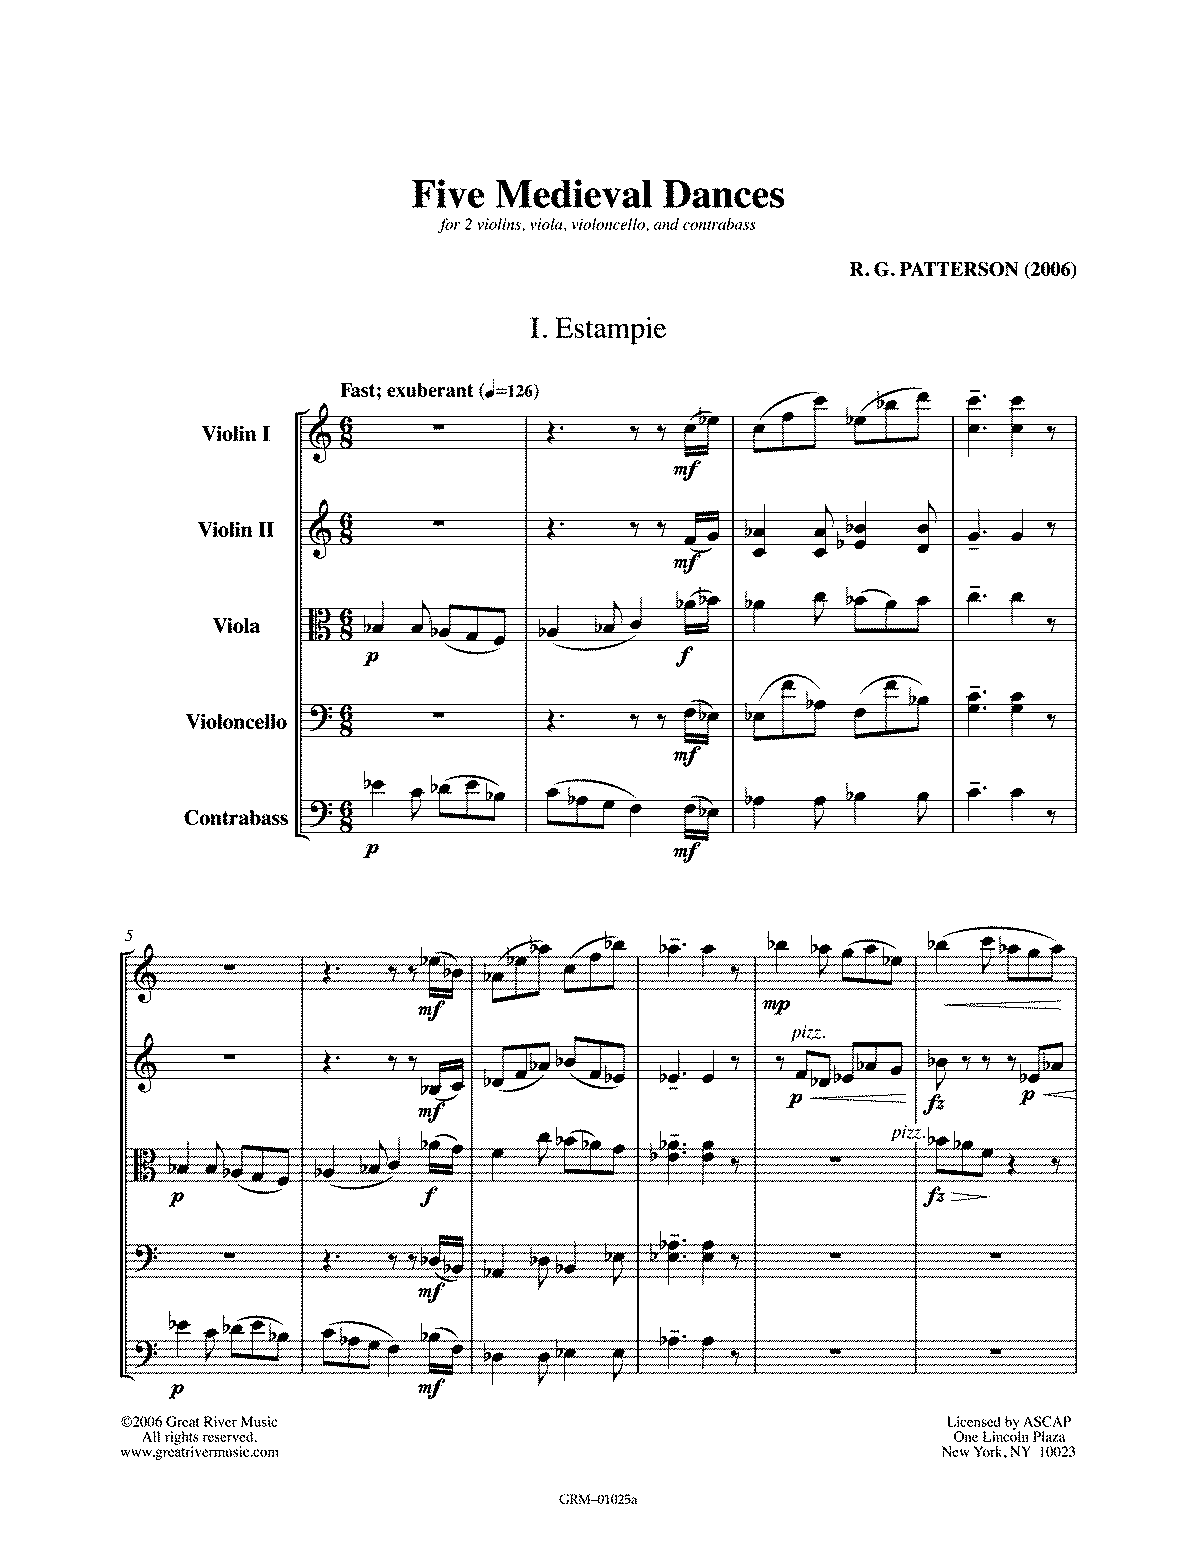 PMLP408030-Patterson-FiveMedievalDances-Strings - Score.pdf